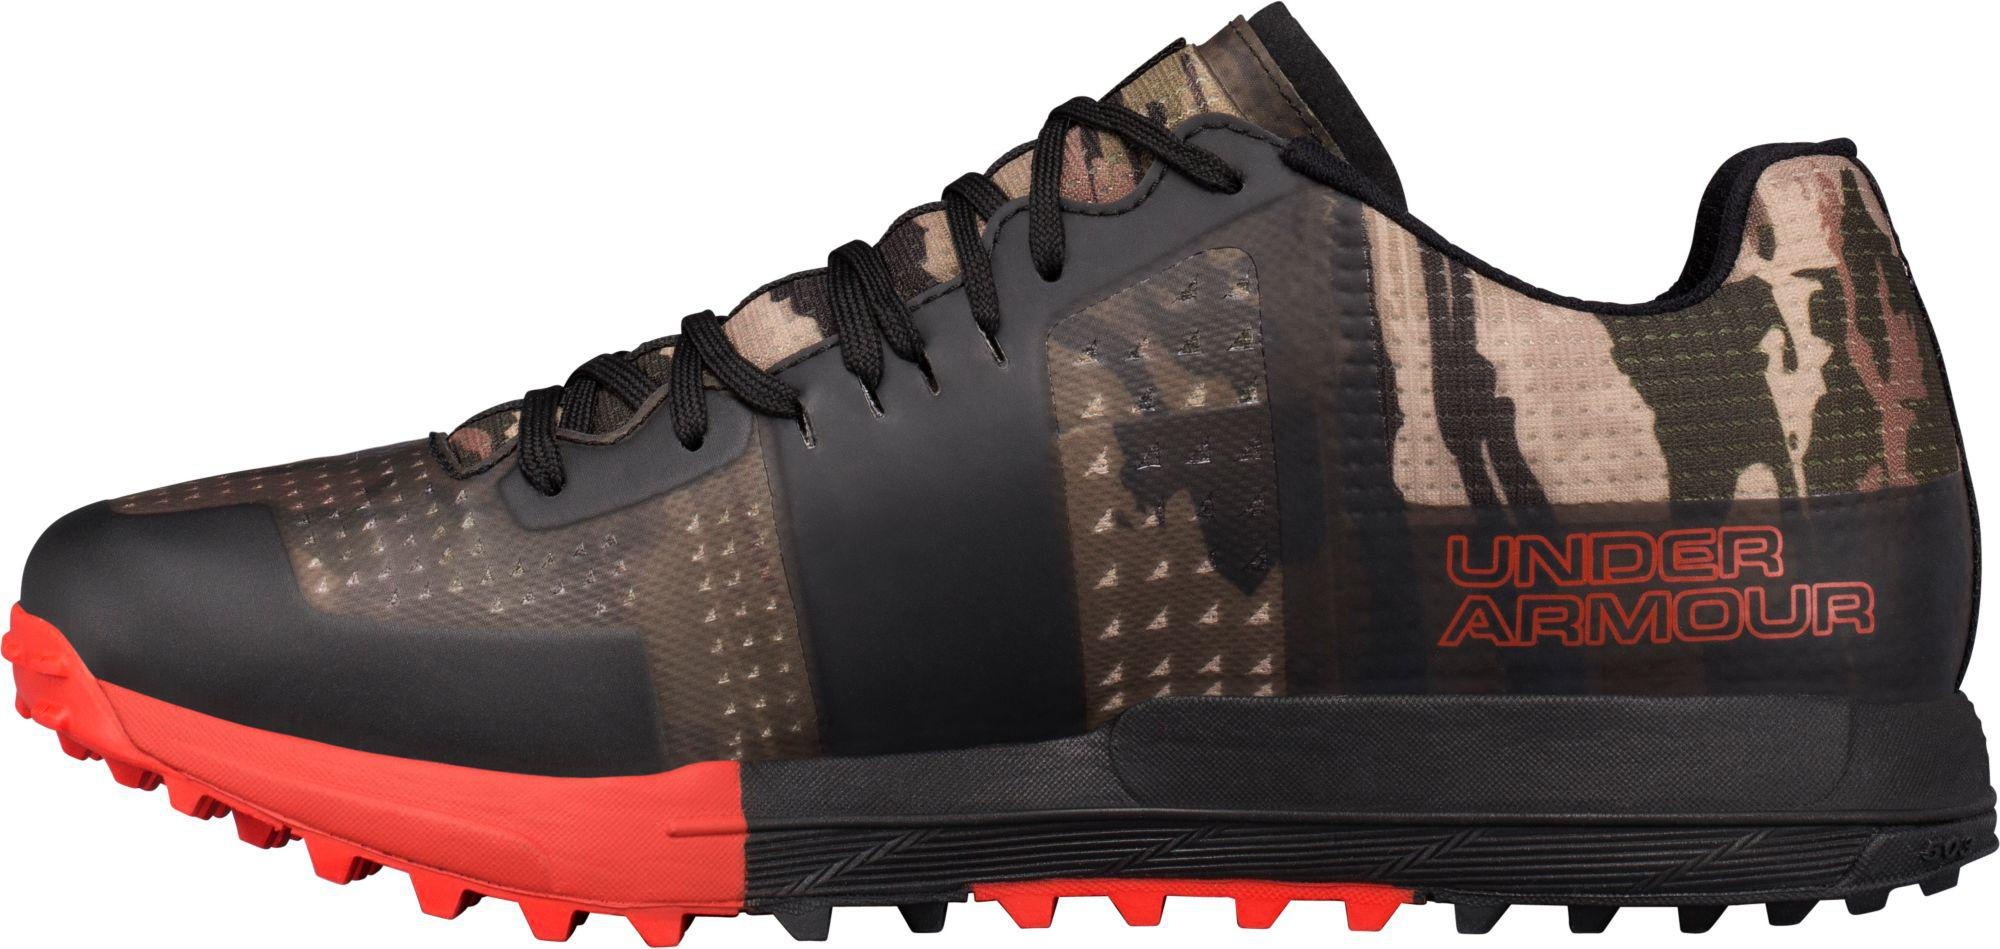 c8cef28541b626 Under Armour - Black Horizon Rtr Camo Trail Running Shoes for Men - Lyst